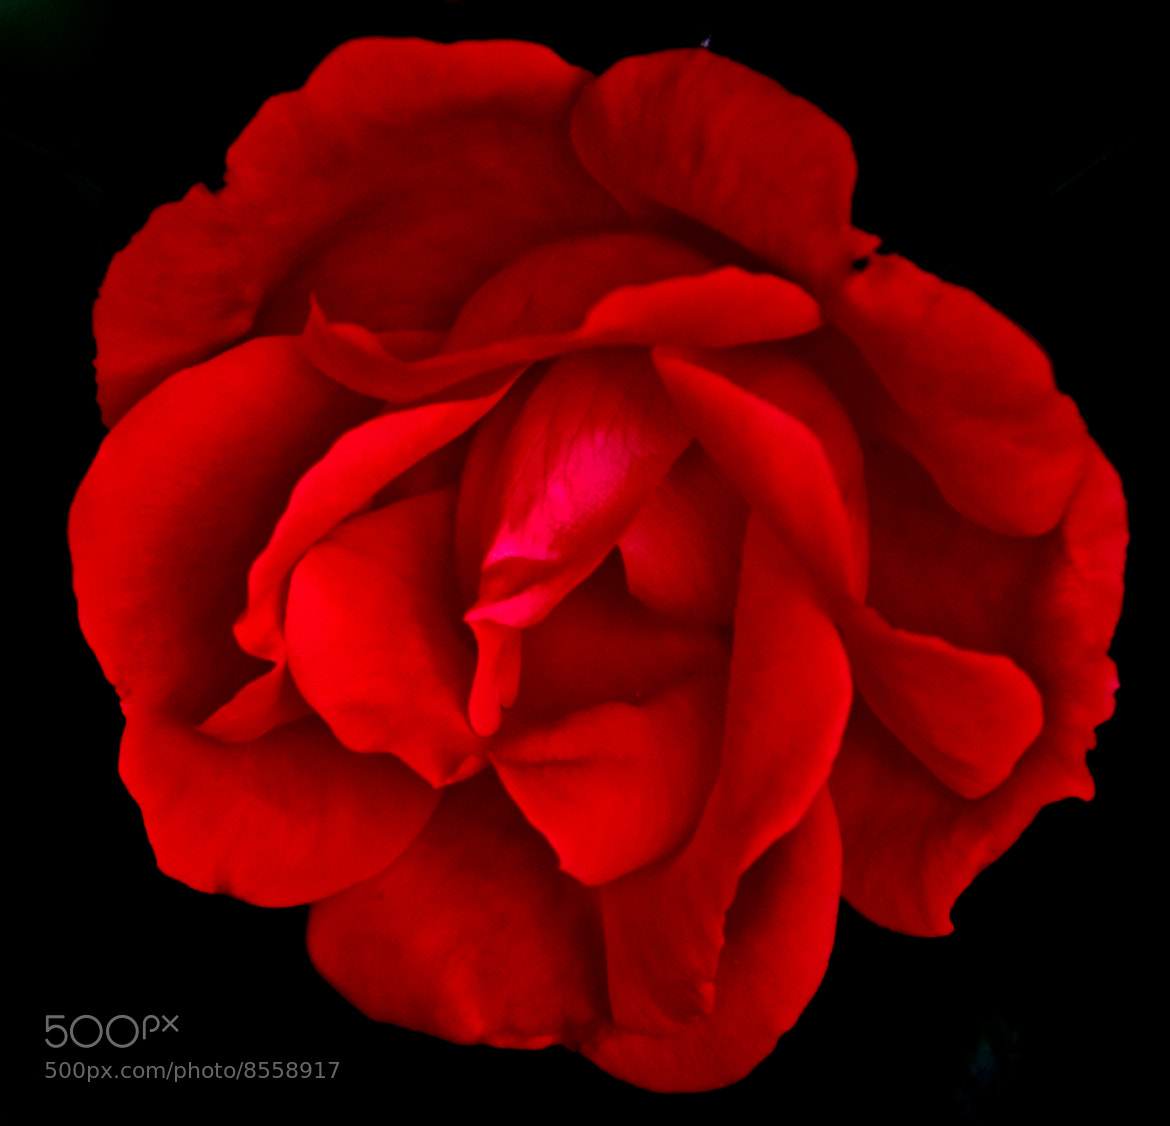 Photograph A Red Rose Darkly by Mark Luftig on 500px